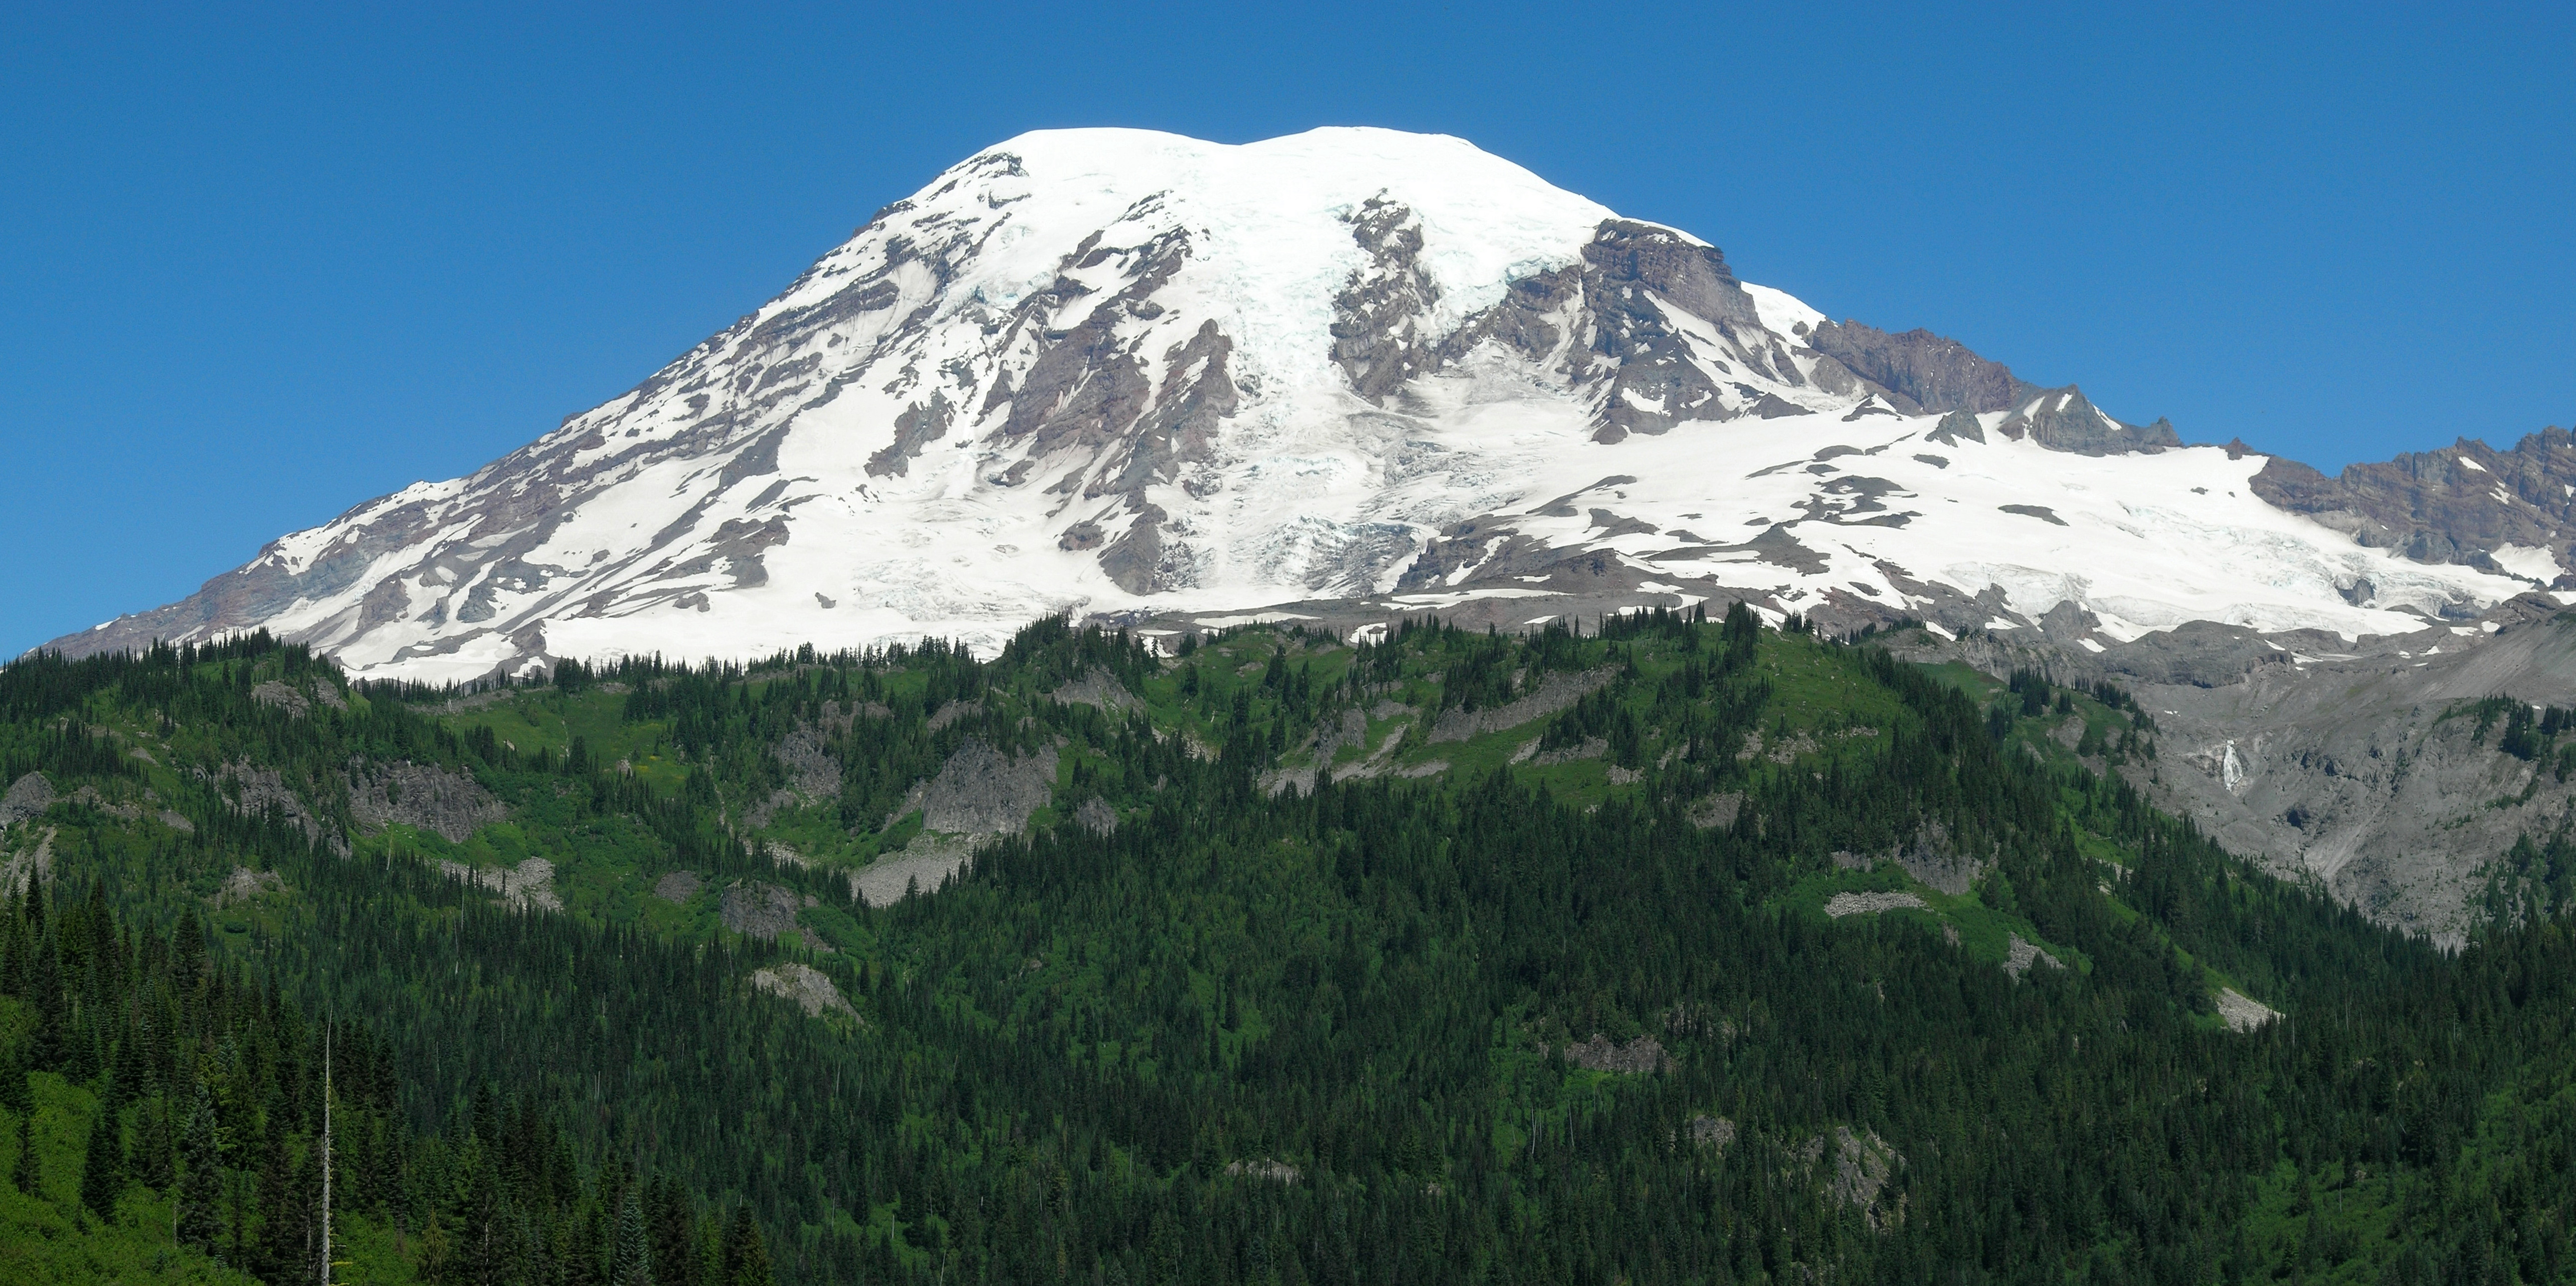 mount rainier online hookup & dating After mount rainier, mount baker is the most heavily glaciated of the cascade range volcanoes the volume of snow and ice on mount baker, 043 cu mi .